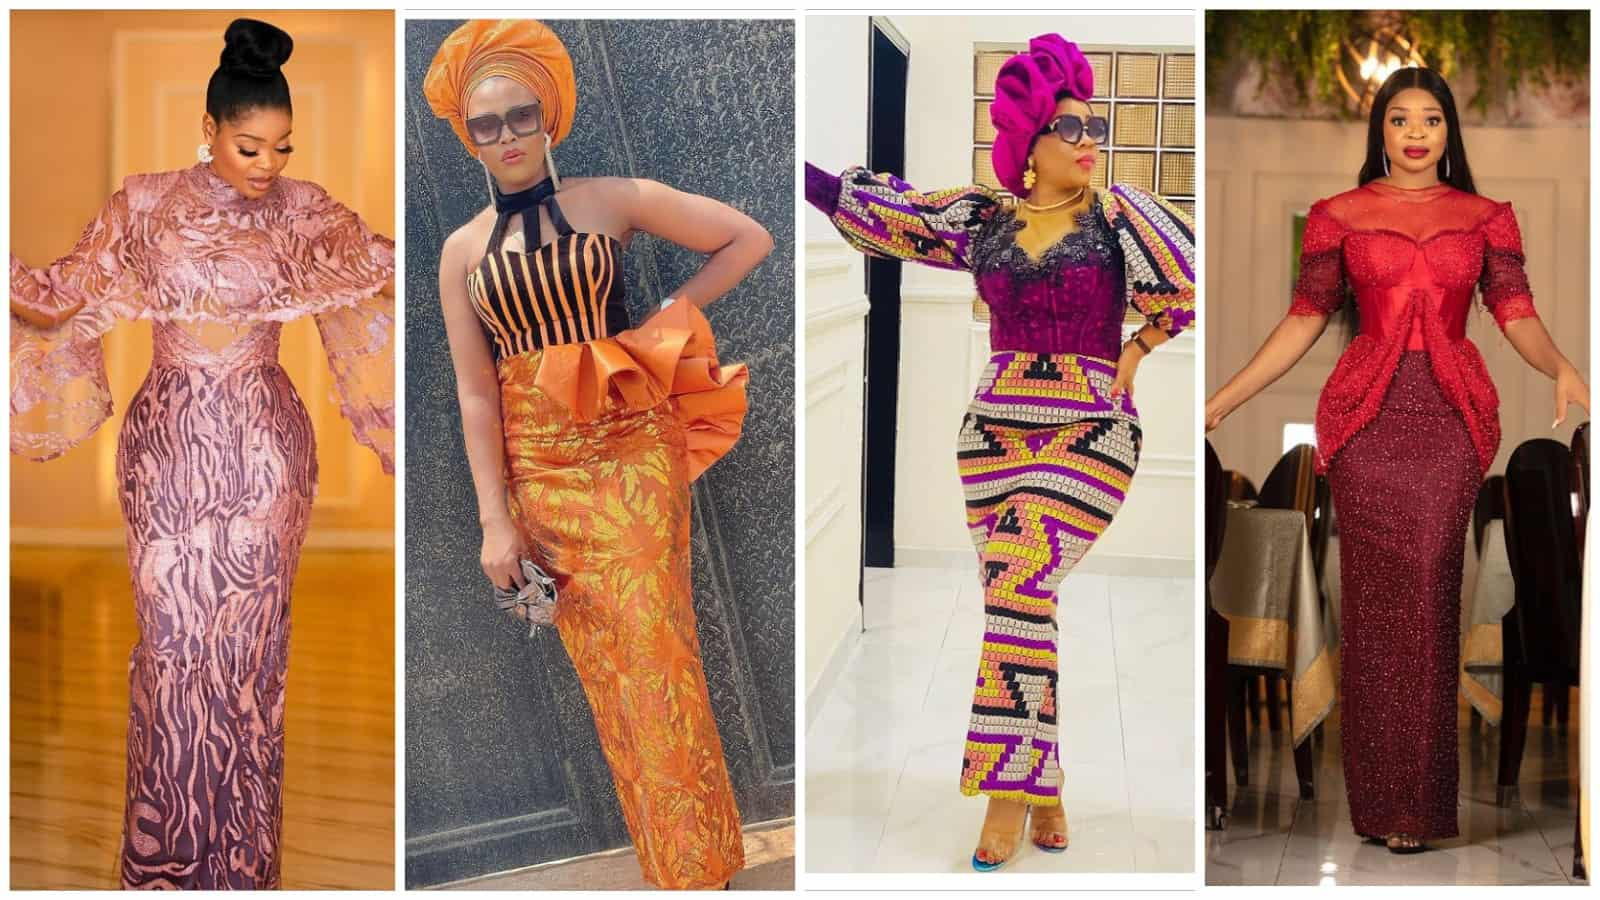 Most Fascinating Styles of the Week